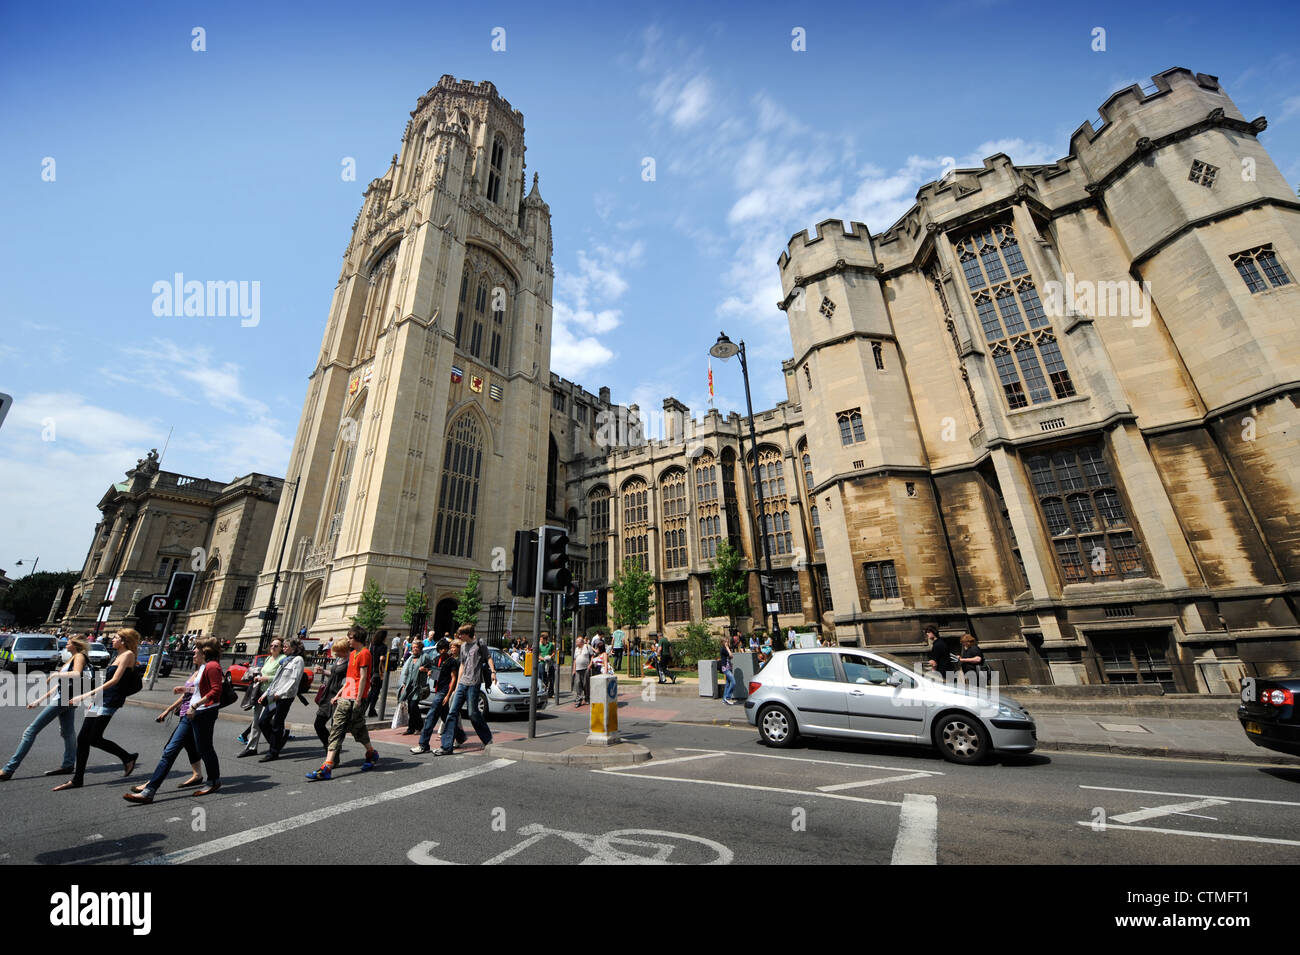 Students on a pedestrian crossing outside Bristol University's Wills Memorial Building UK - Stock Image